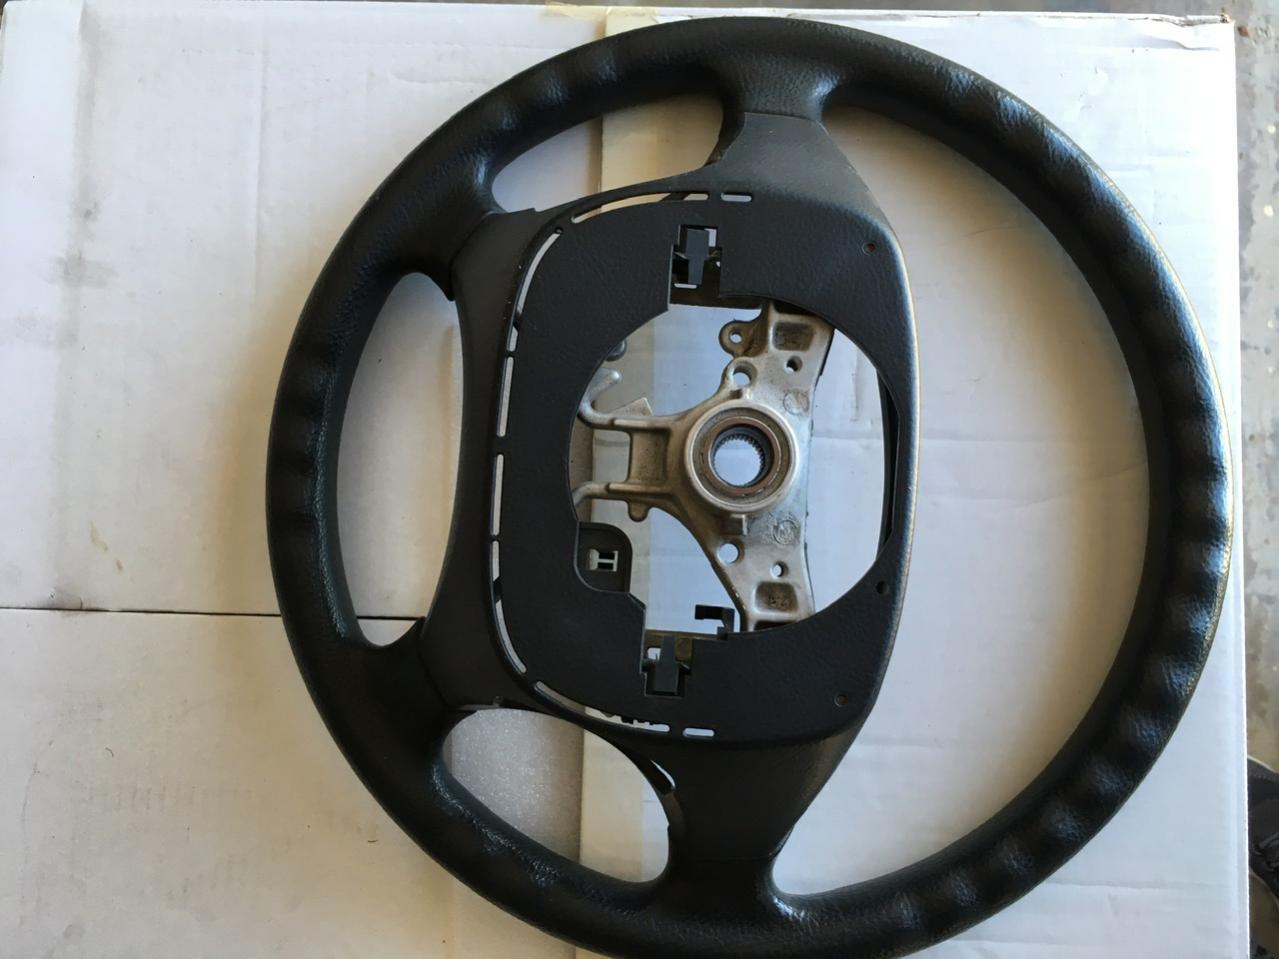 Steering wheel and other hard to find parts-2948a554-c713-44fa-bfeb-452031beb593-jpg